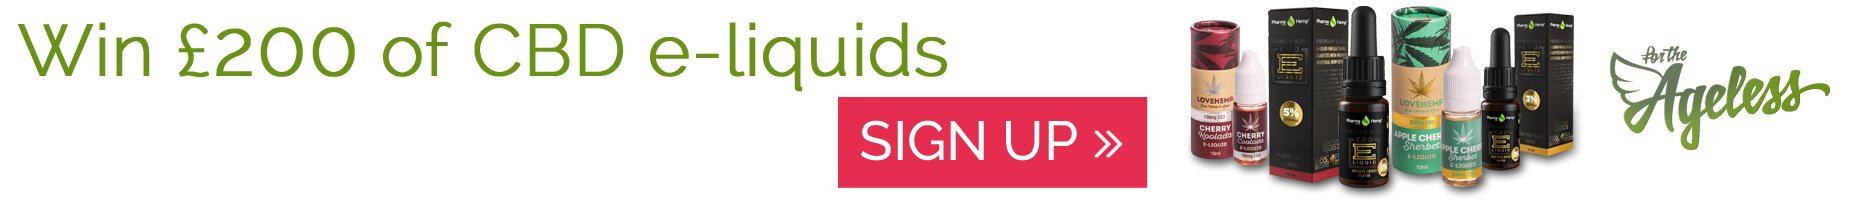 Win £200 of CBD e-liquids from For The Ageless